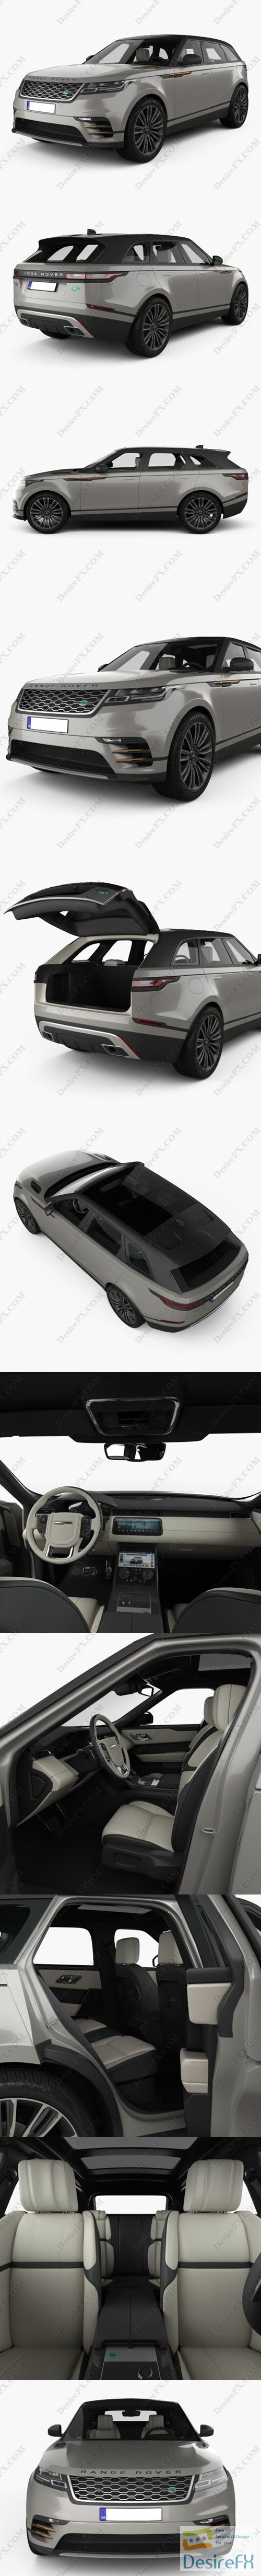 3d-models - Land Rover Range Rover Velar First edition with HQ interior 2018 3D Model